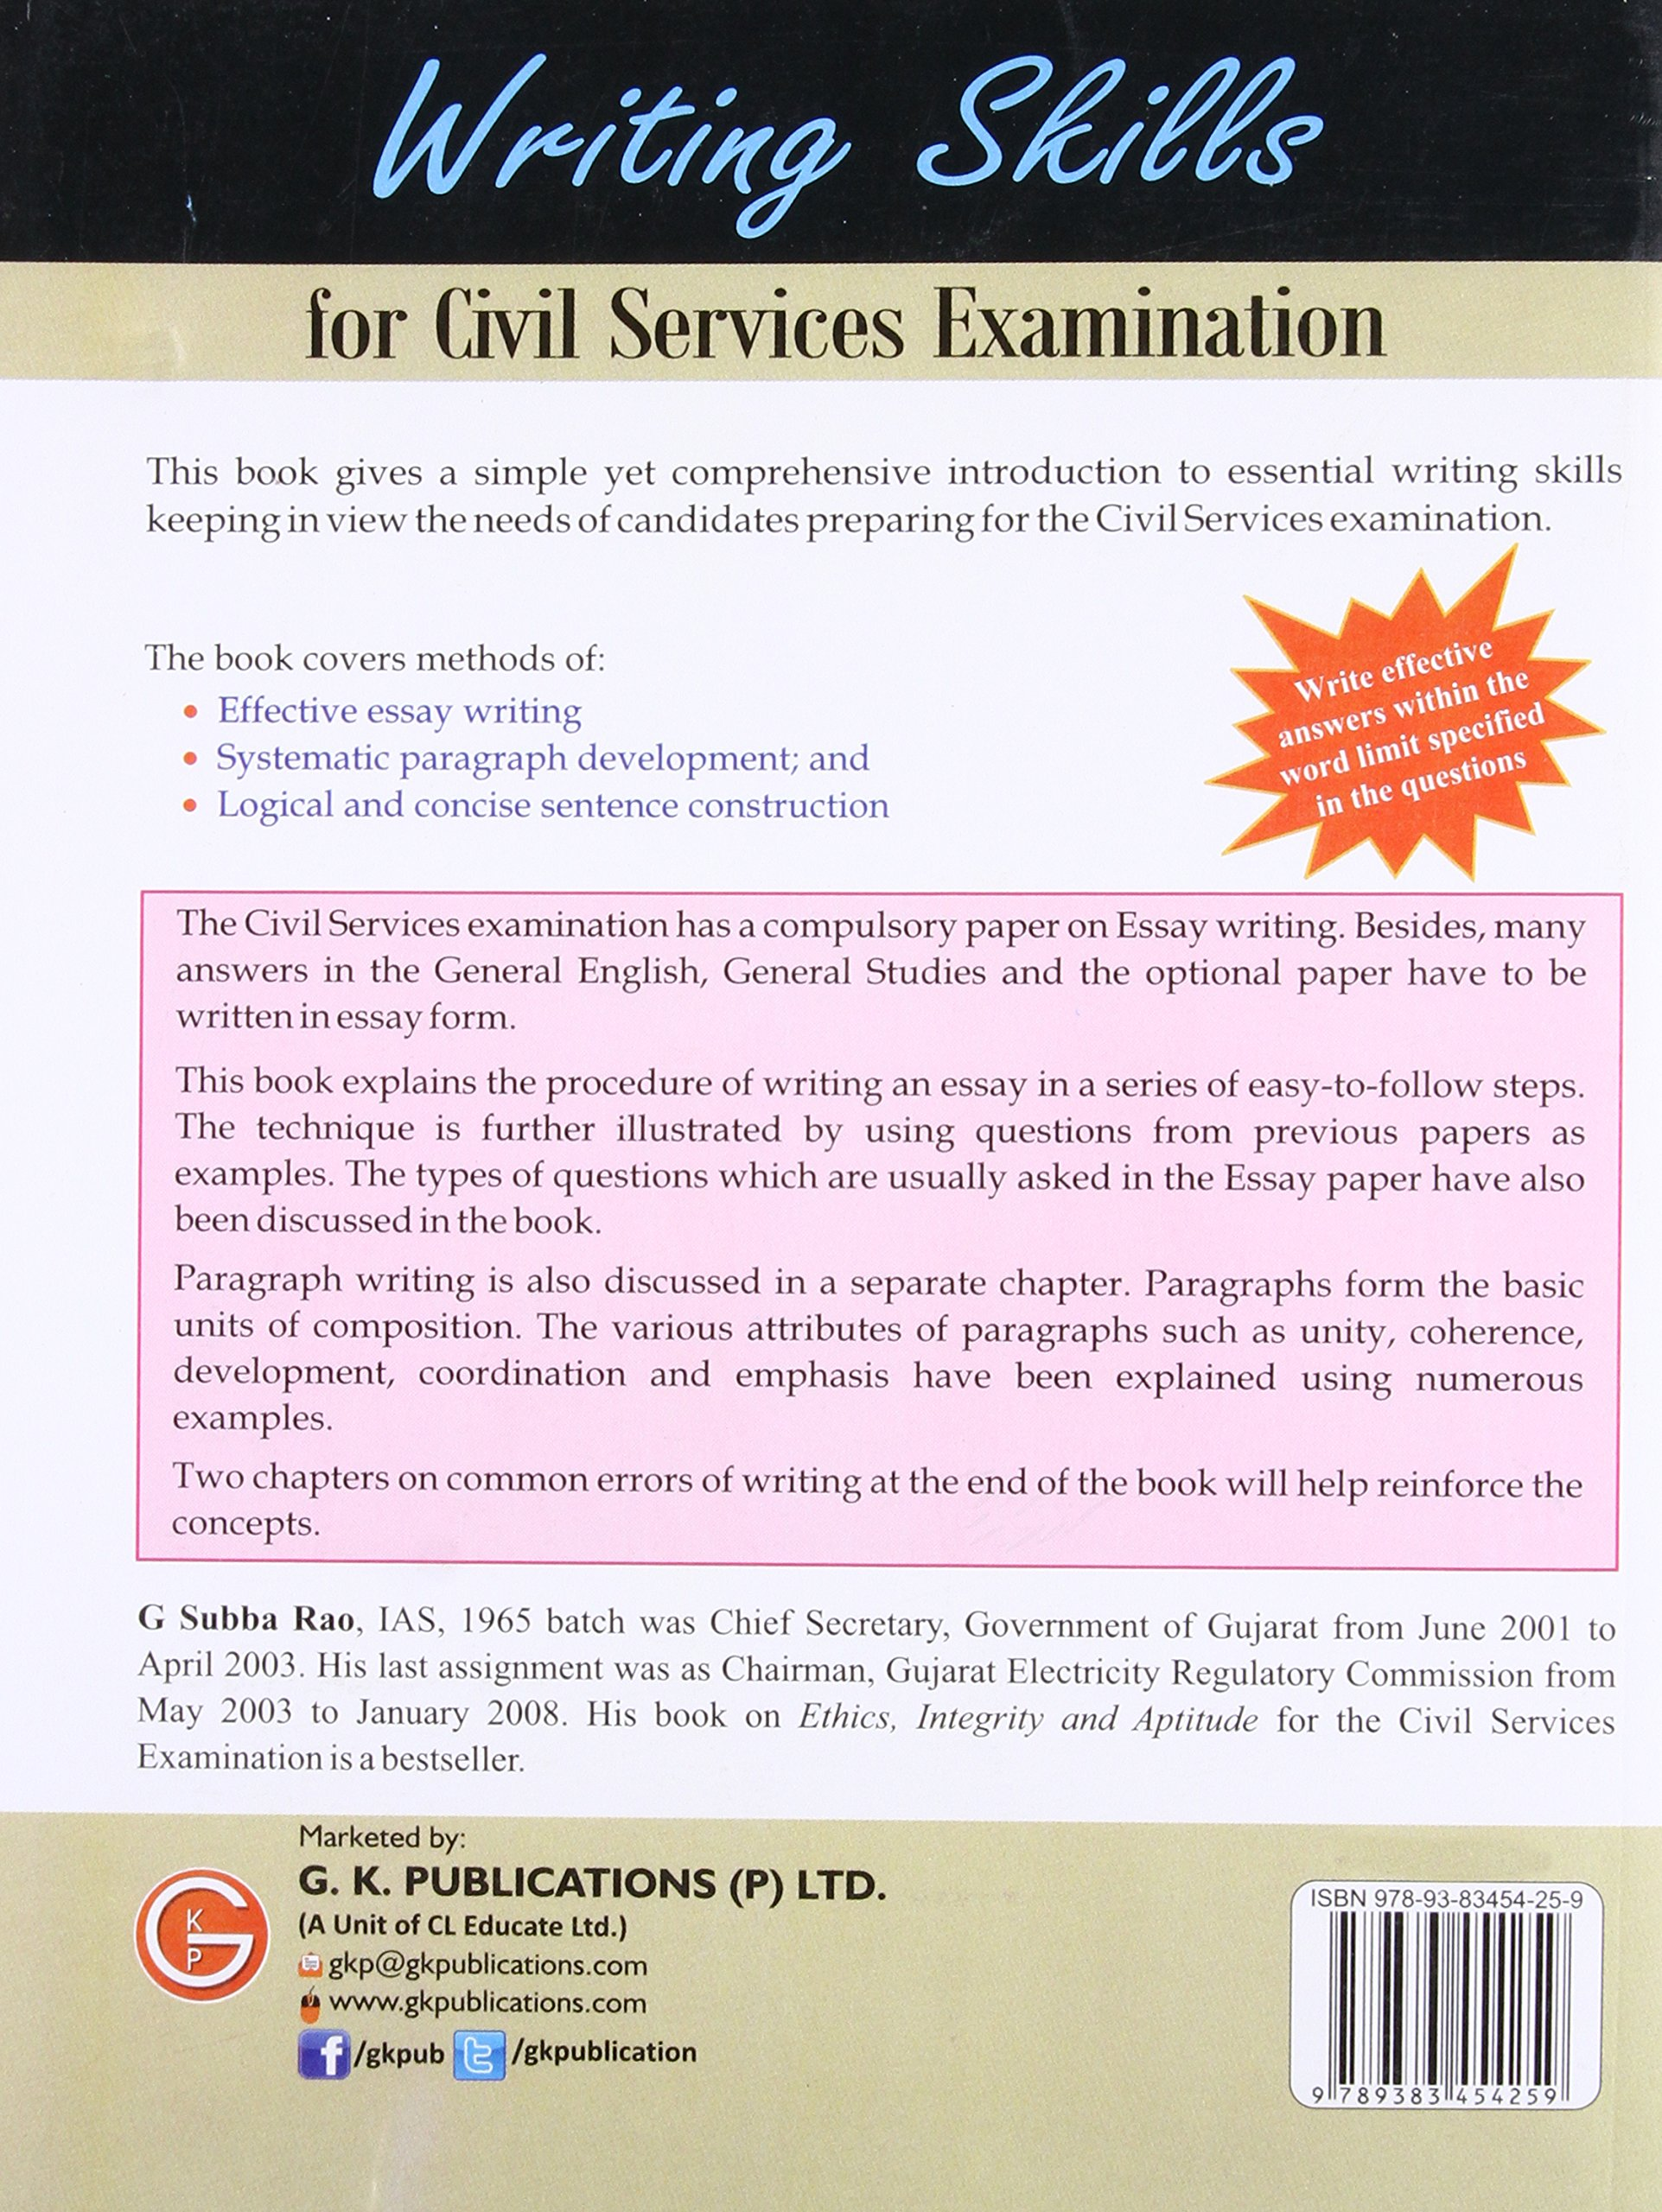 buy writing skills for civil services examination book online at  buy writing skills for civil services examination book online at low prices in writing skills for civil services examination reviews ratings